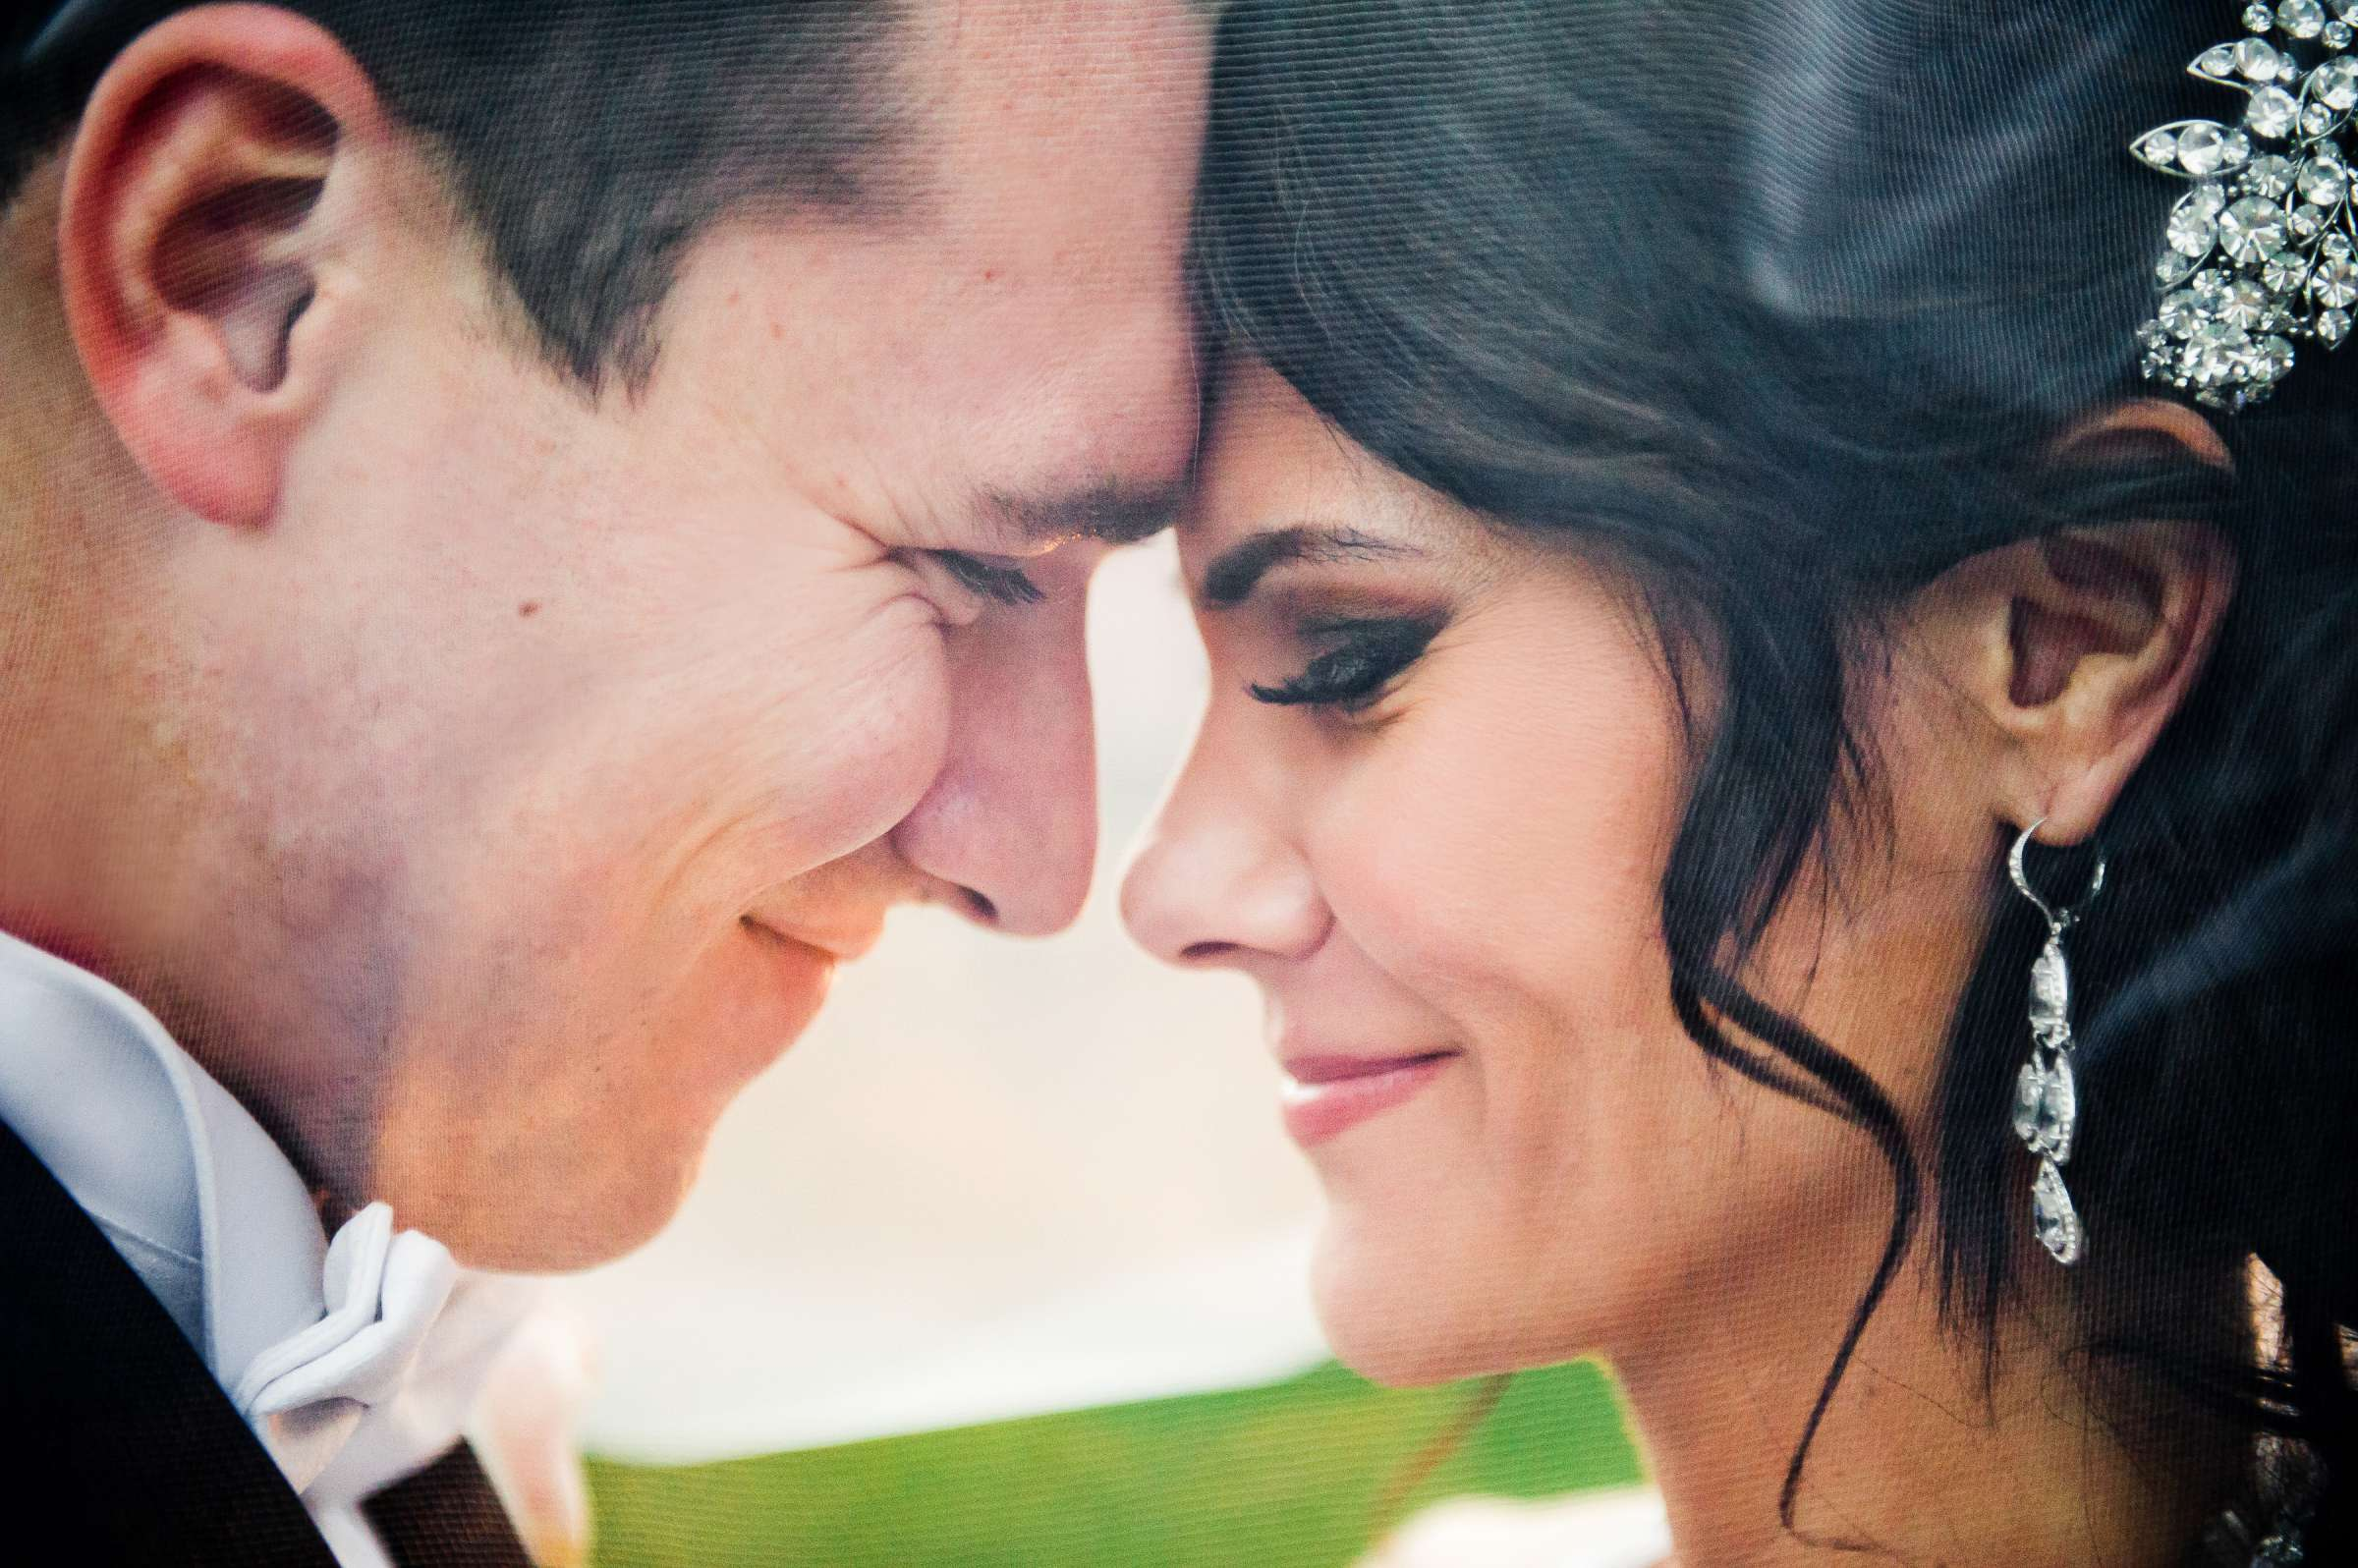 Fairmont Grand Del Mar Wedding, Angela and Tom Wedding Photo #5 by True Photography